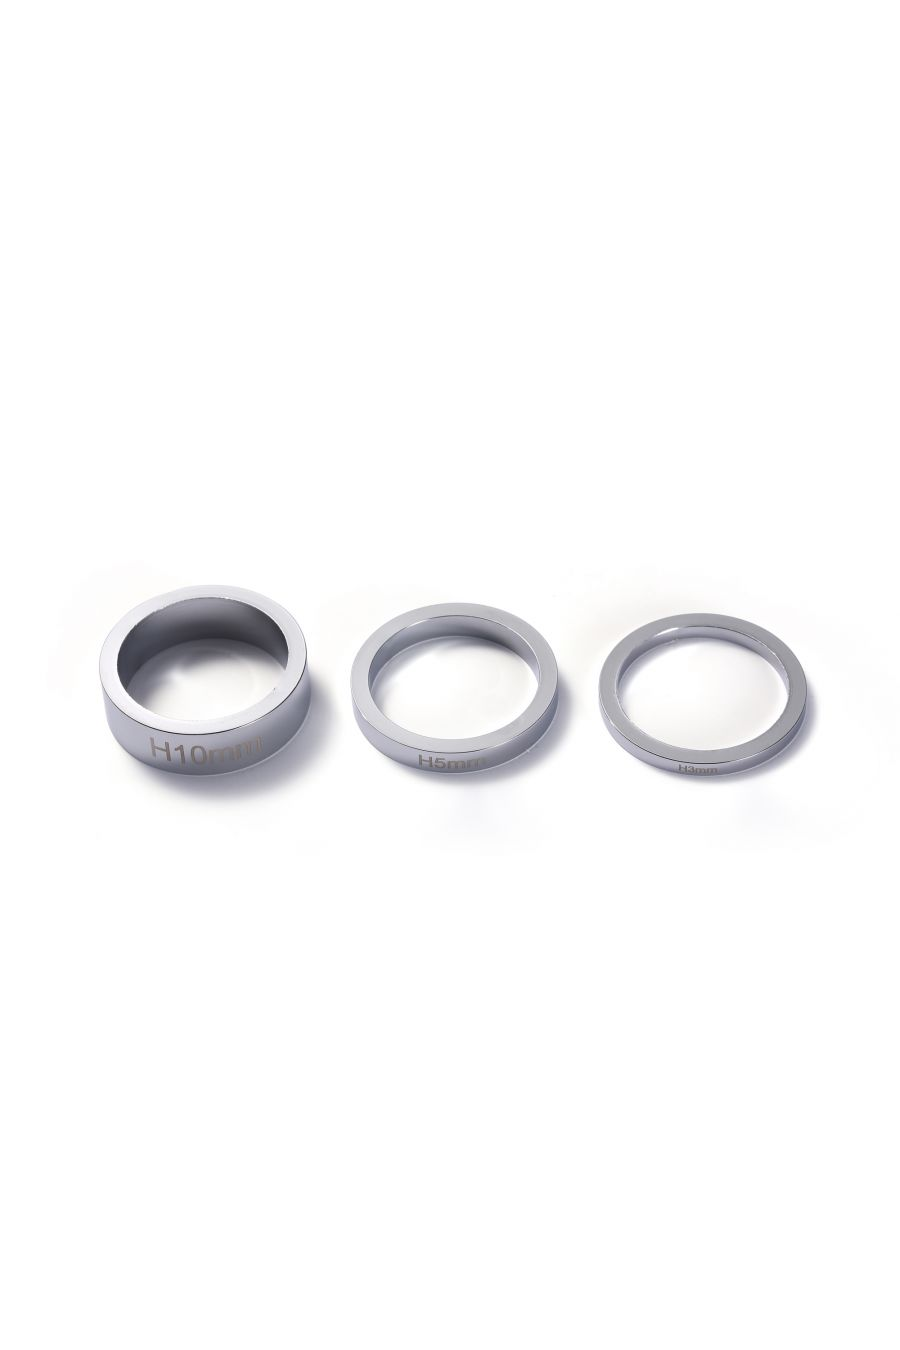 Bar Spacers Chrome 3 Pack 3mm, 5mm , 10mm